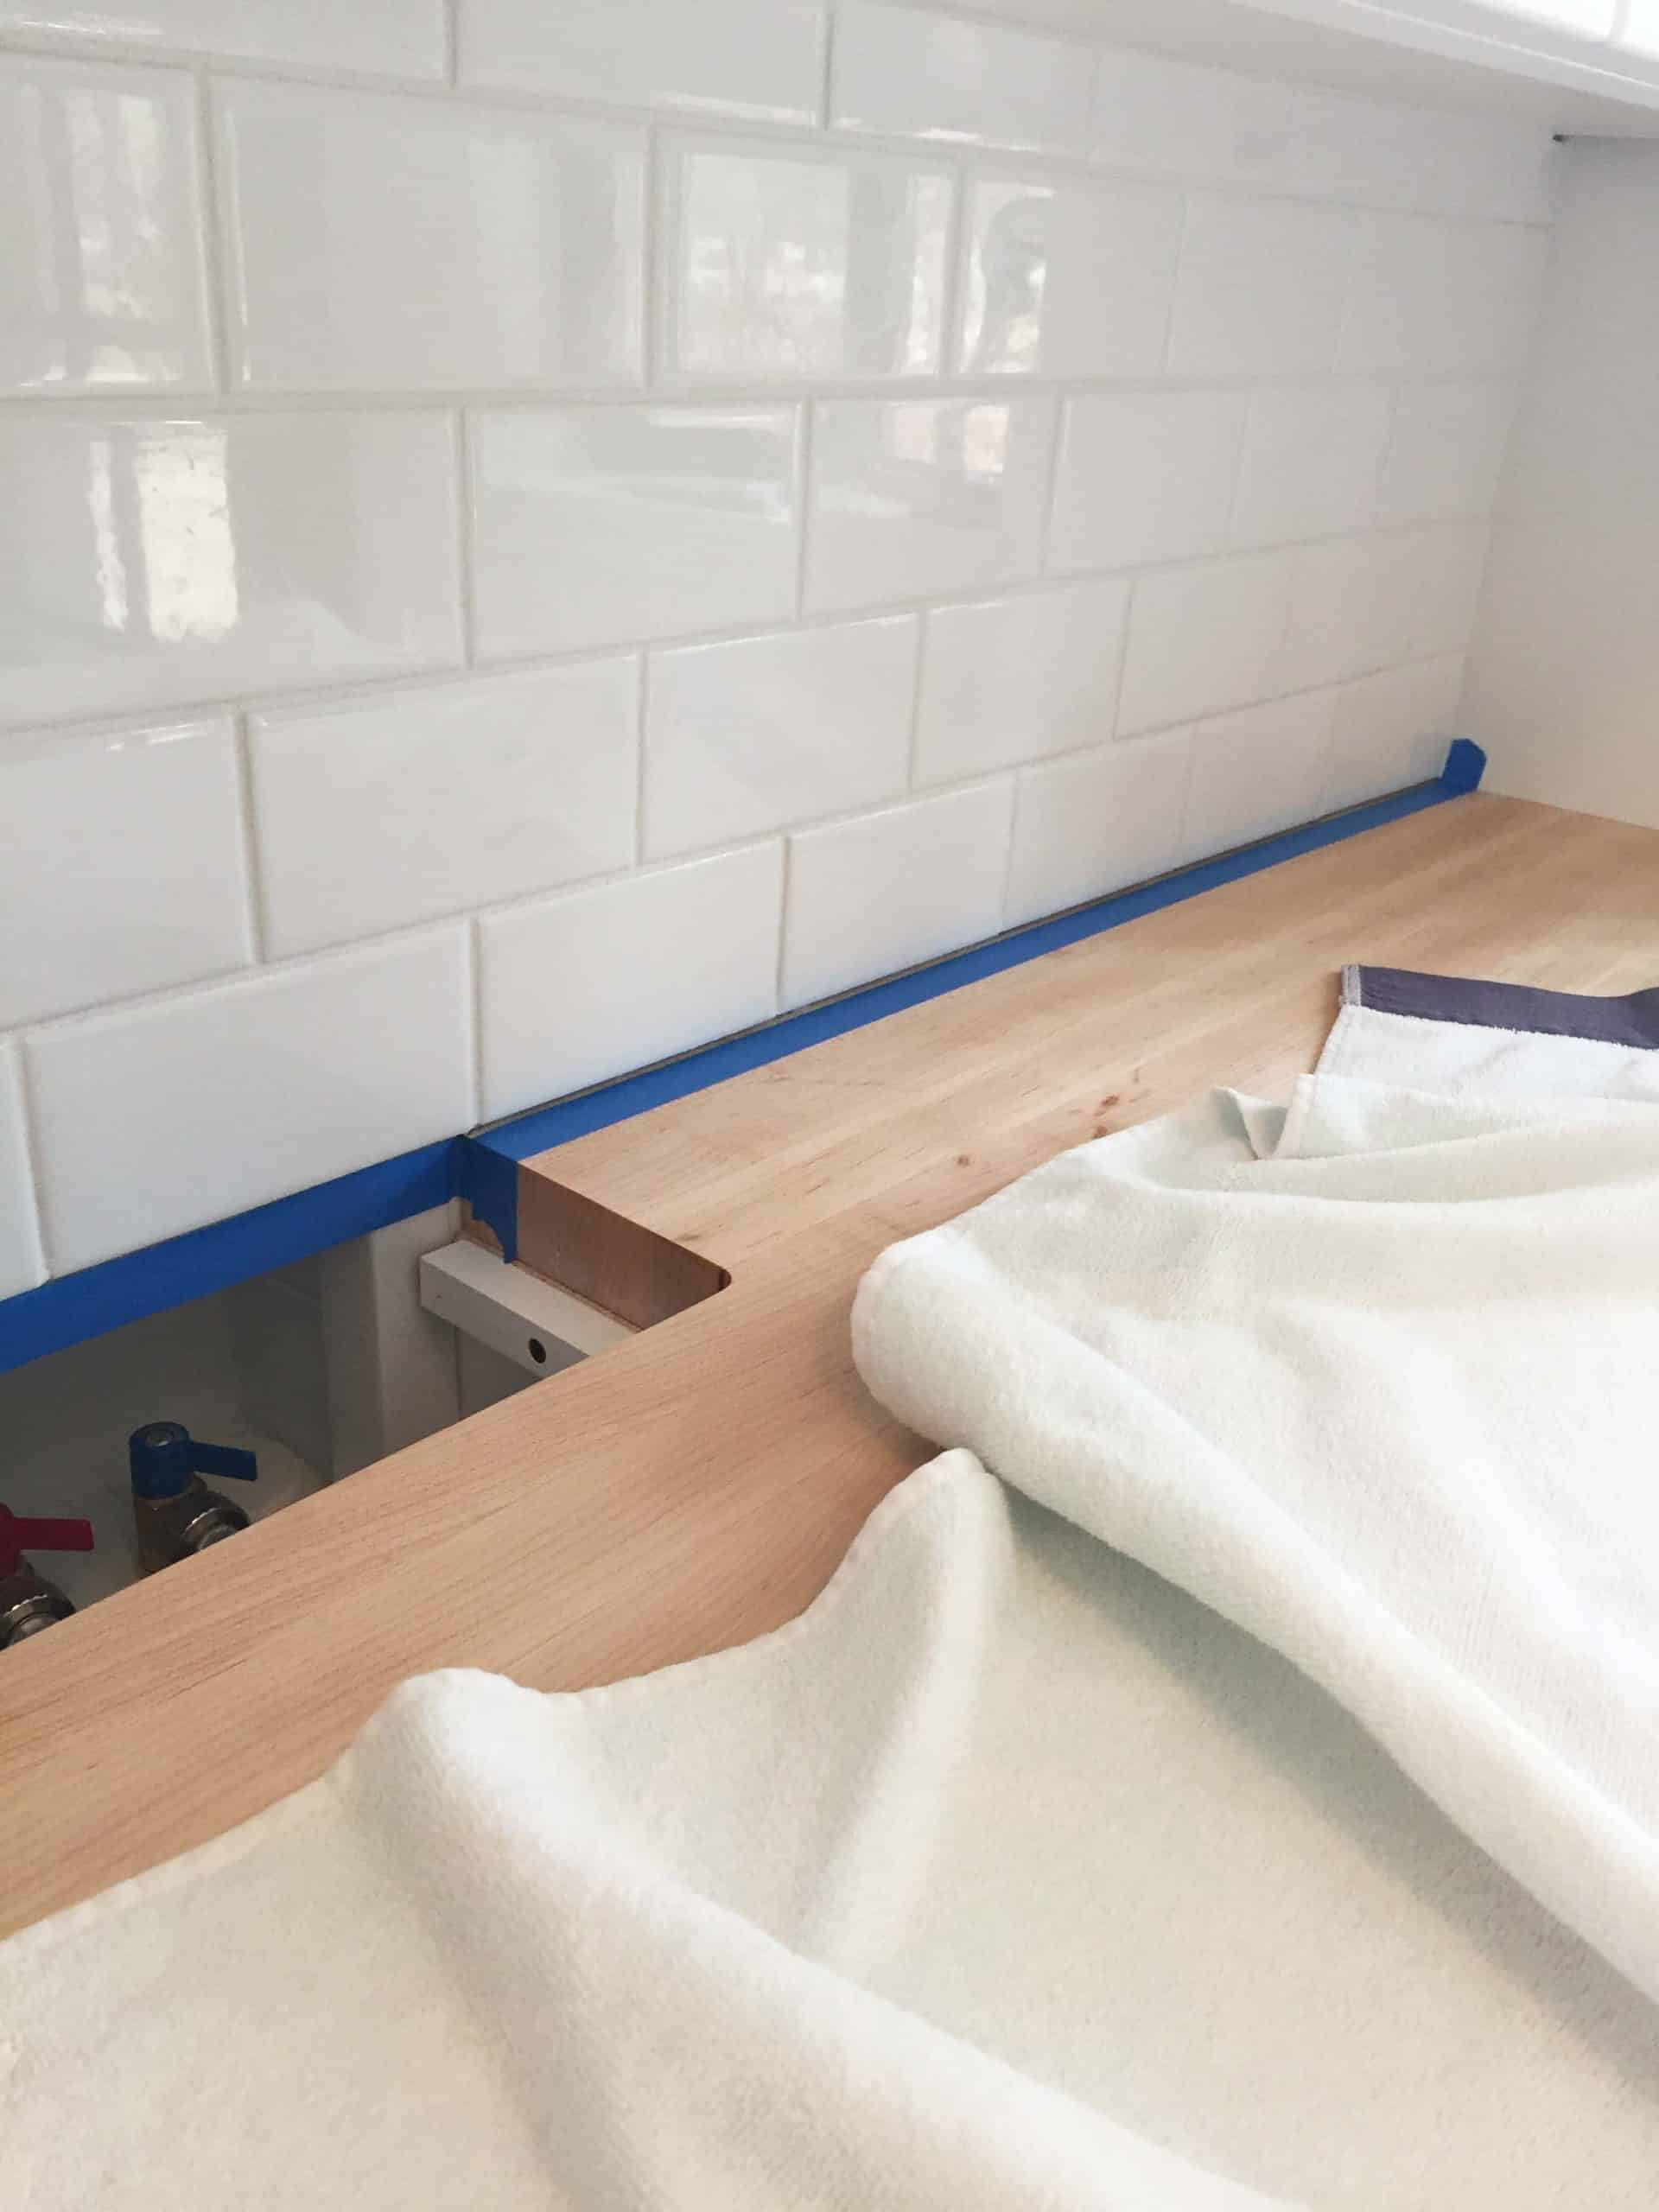 white subway tile backsplash in laundry room with butcher block countertops